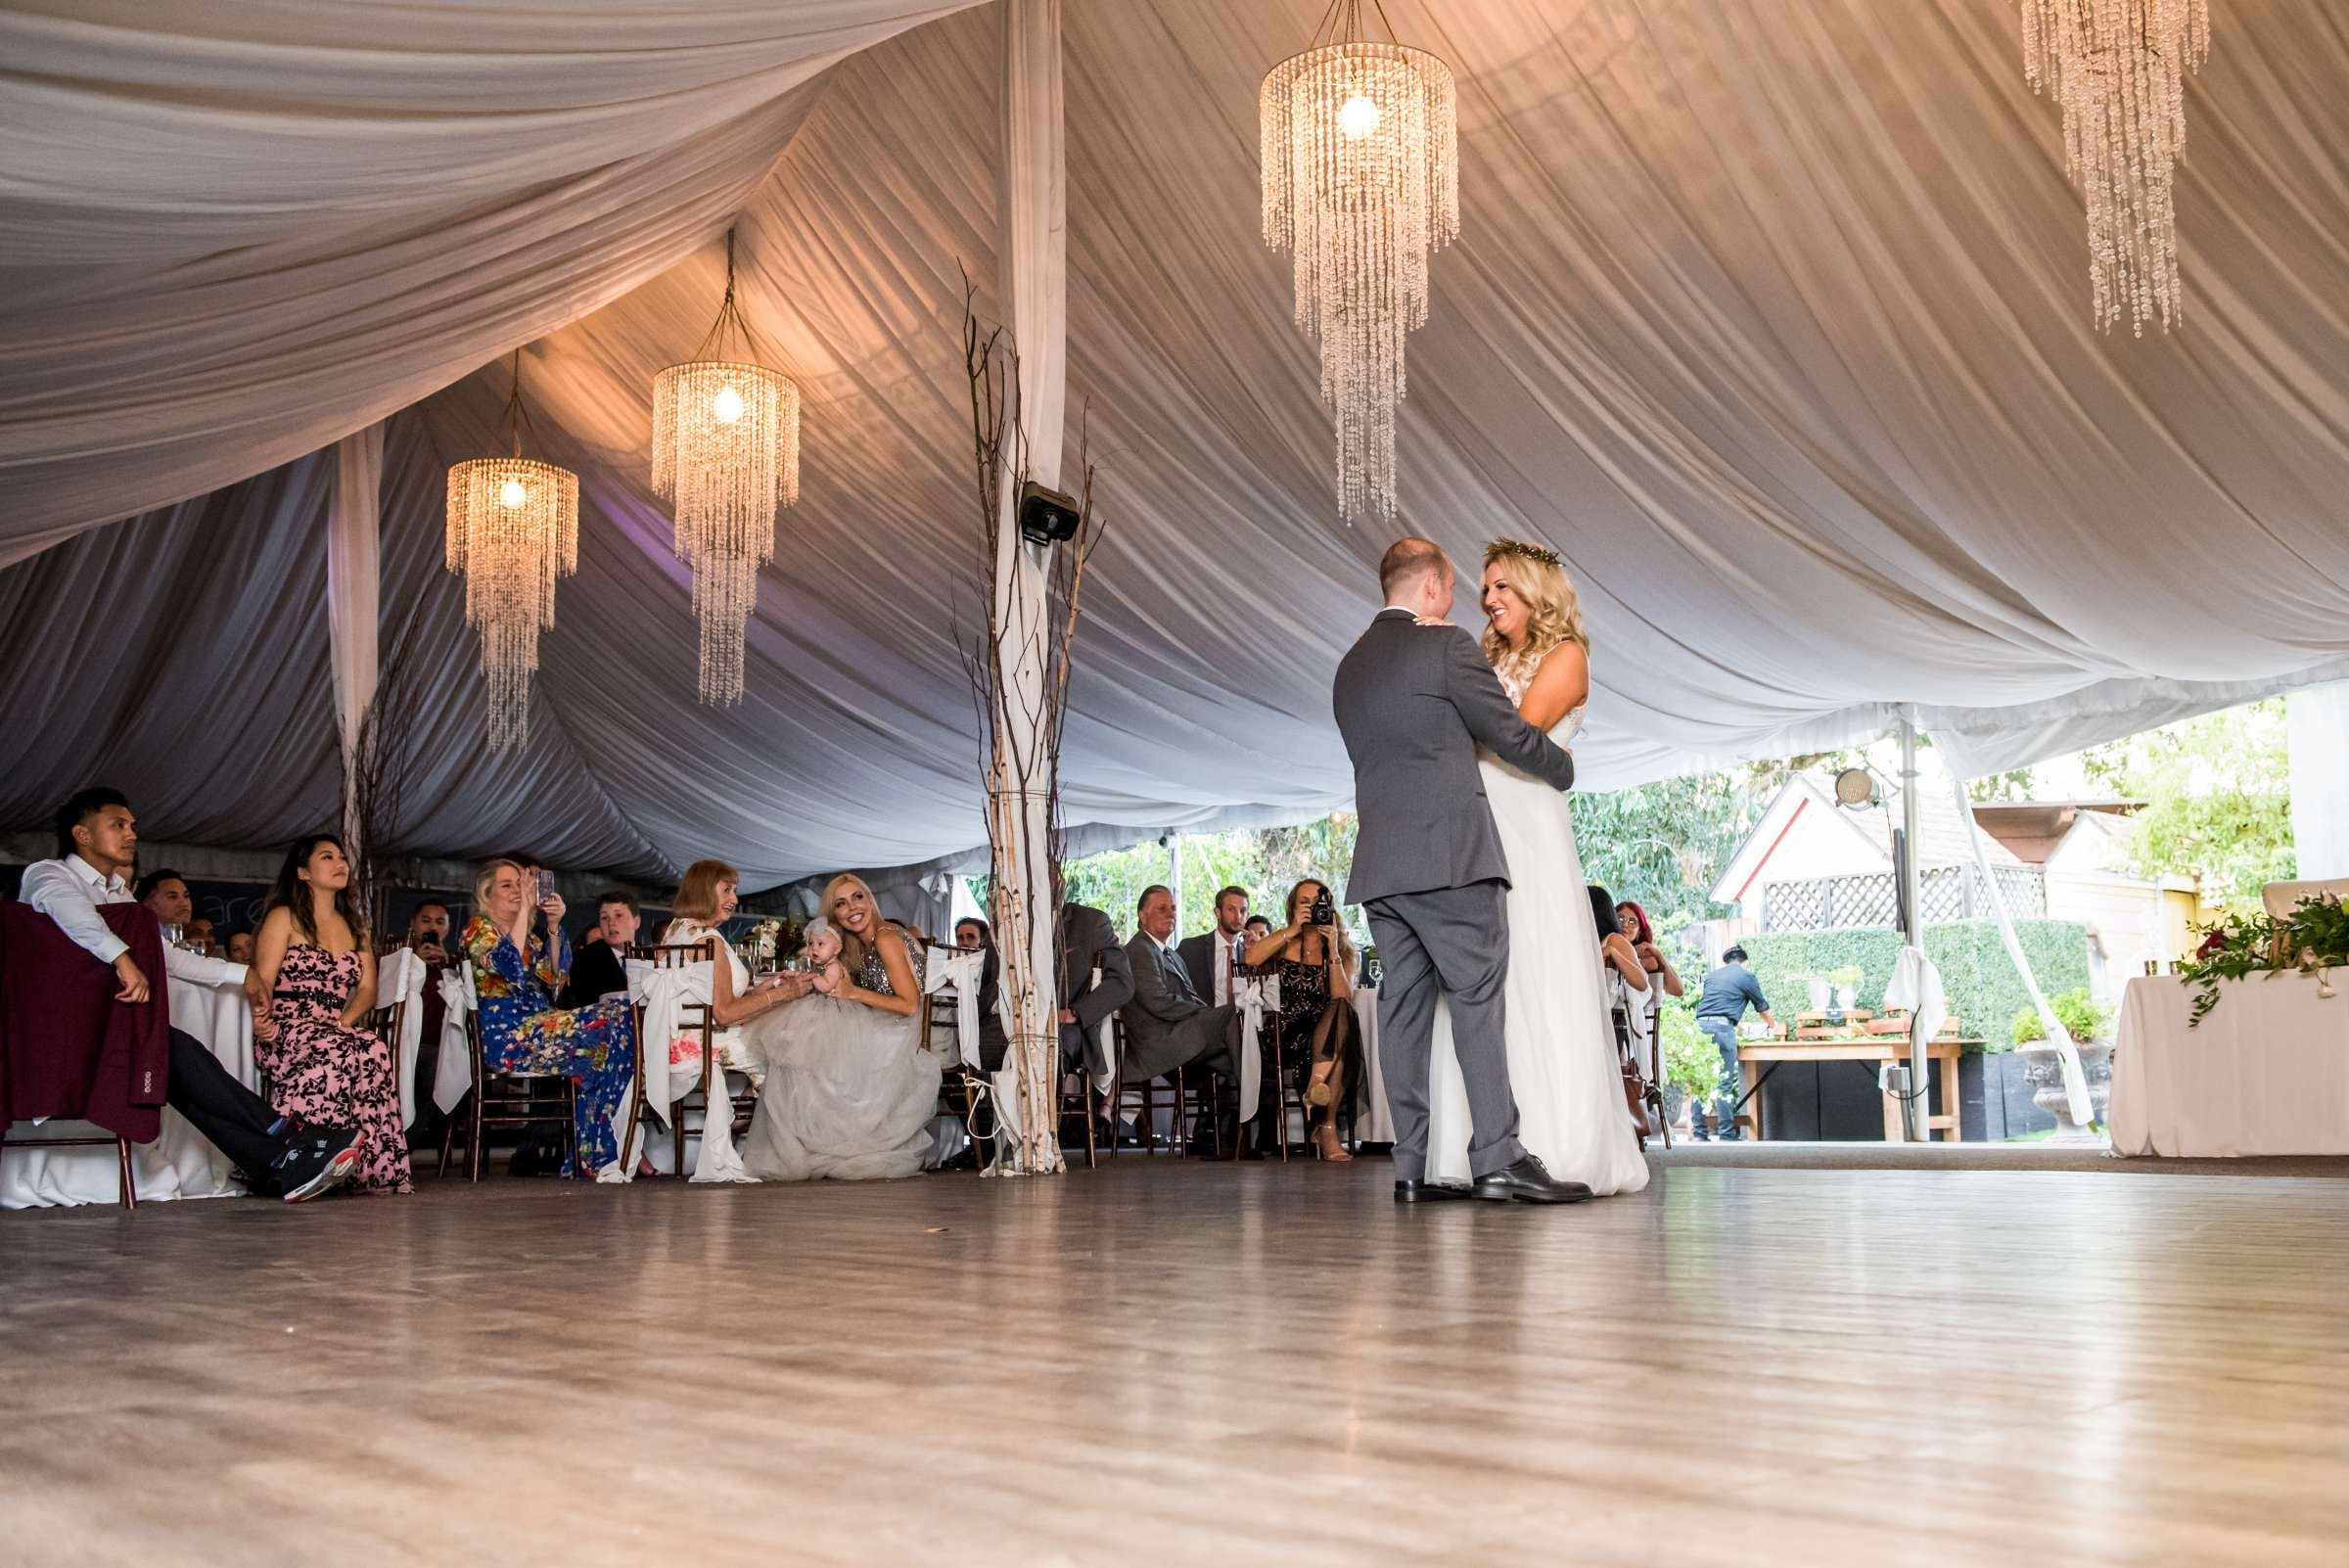 Twin Oaks House & Gardens Wedding Estate Wedding, Brittany and Sean Wedding Photo #110 by True Photography